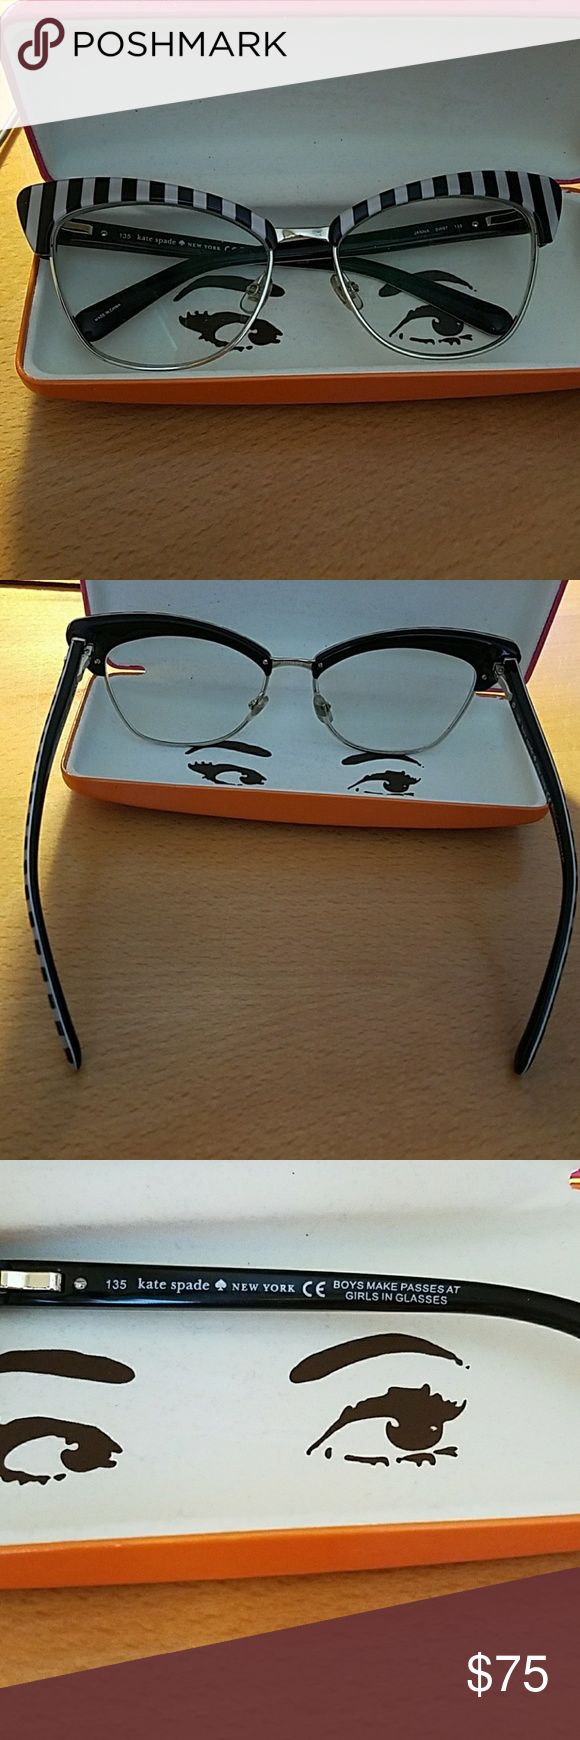 63 best Eyeglasses images on Pinterest | Eye glasses, Sunglasses and ...